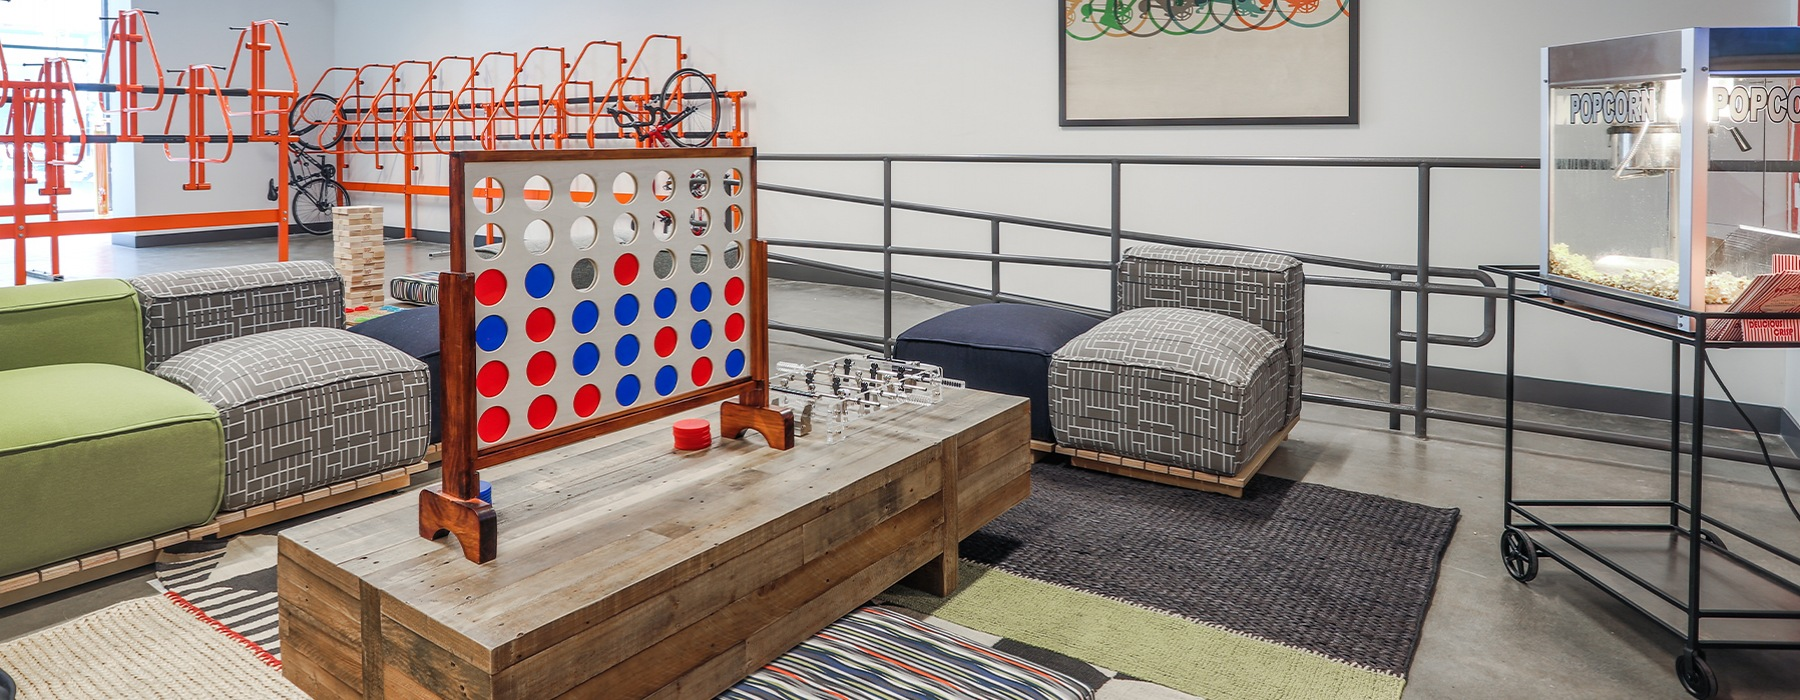 Game Room with lounge seating and games